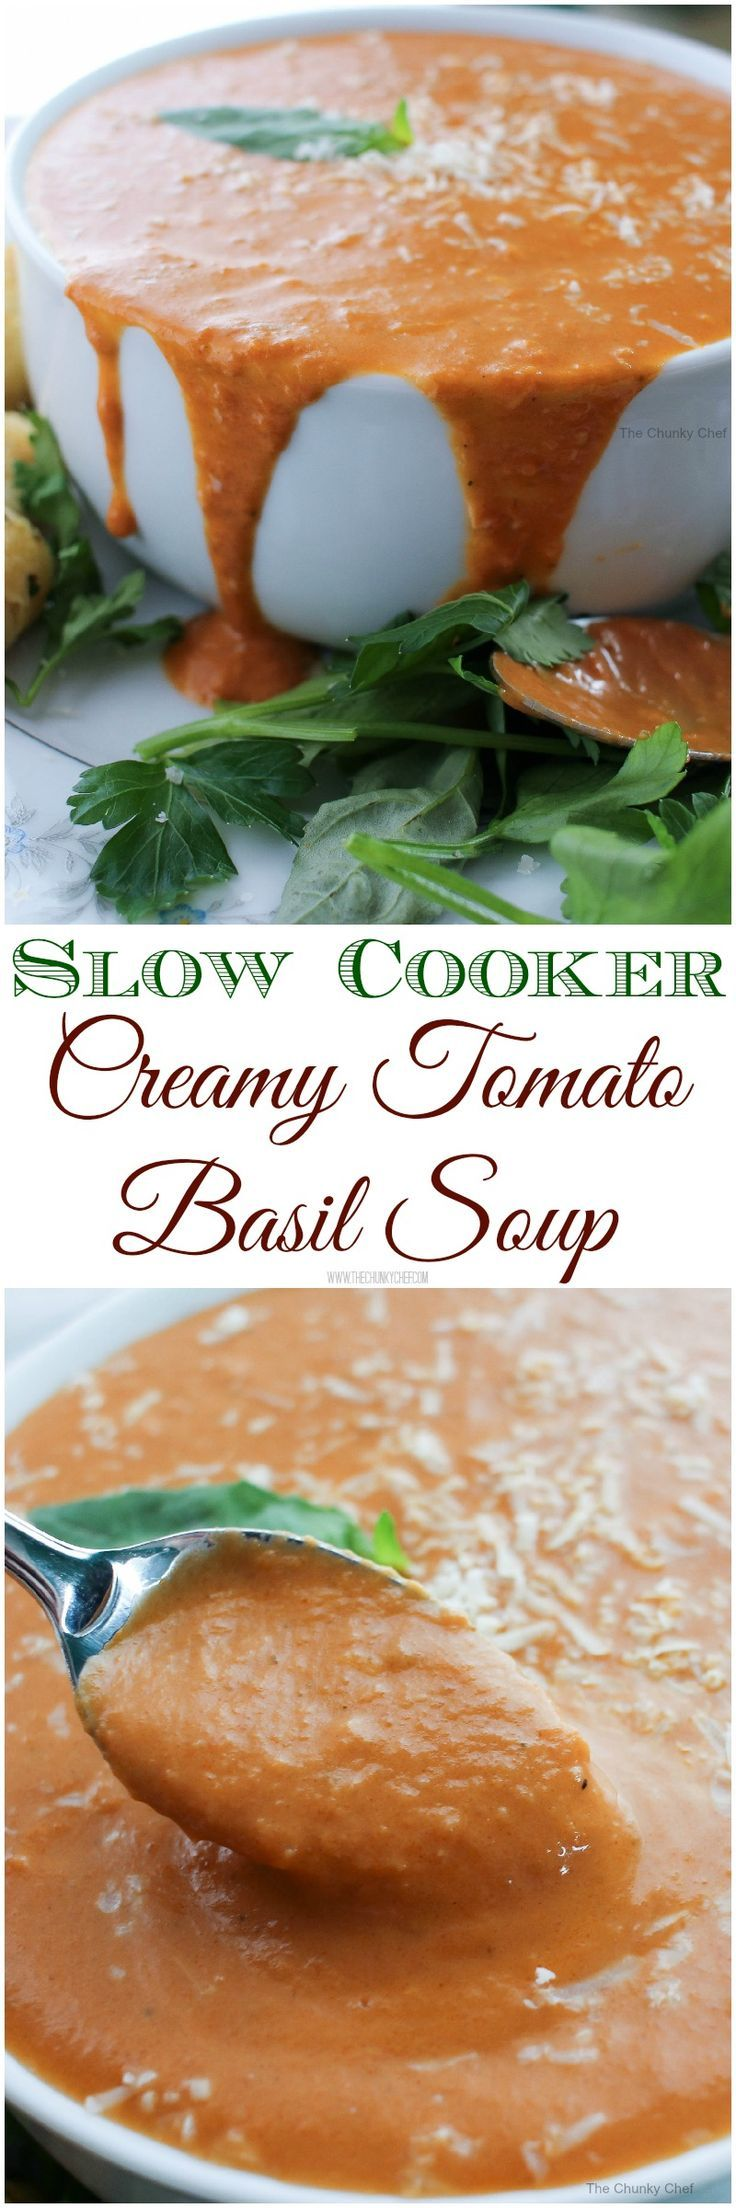 Slow Cooker Creamy Tomato Basil Soup - Rich and creamy, full of flavor, and cooked in your slow cooker! (Tomato Soup Recipes)